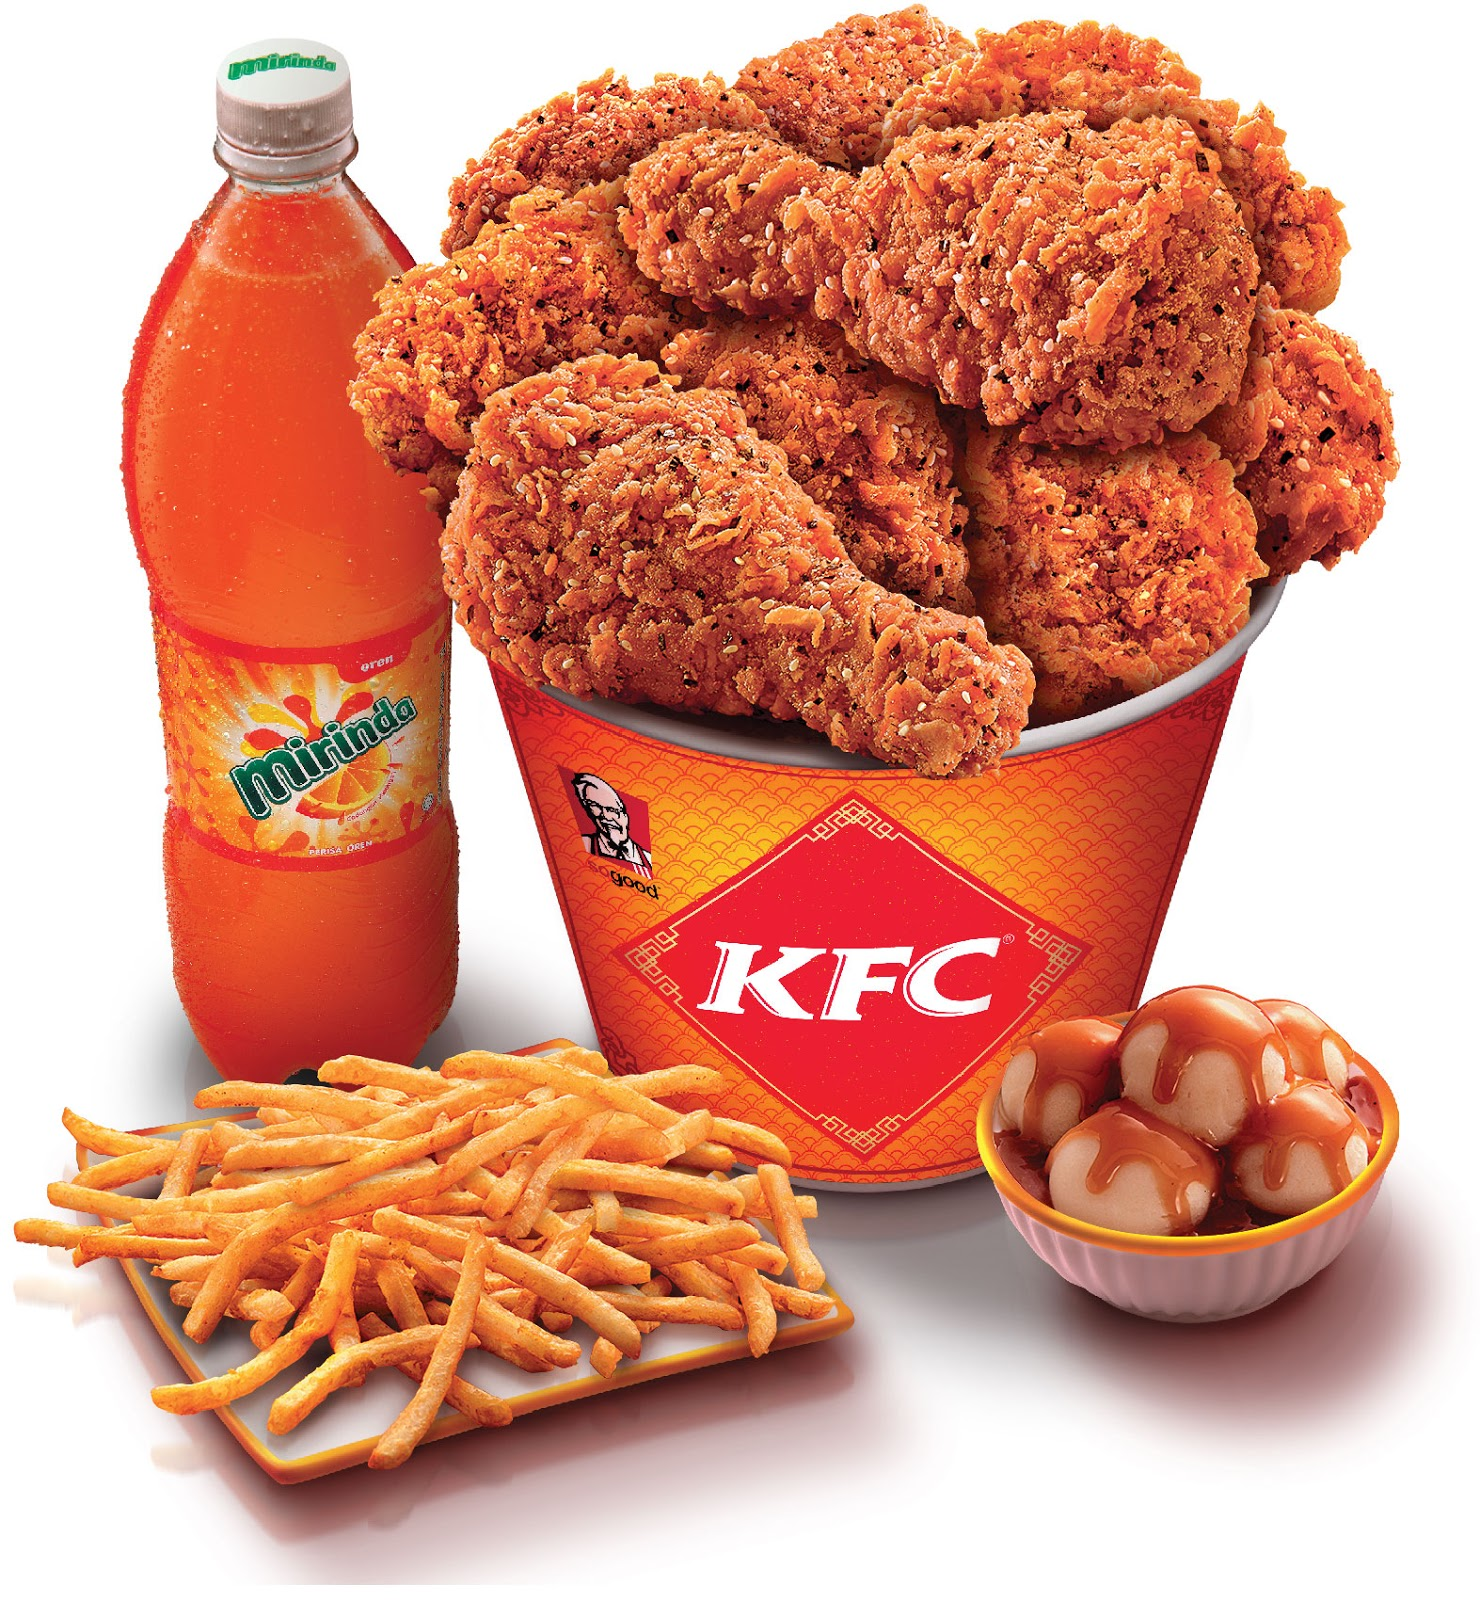 List of countries with KFC franchises